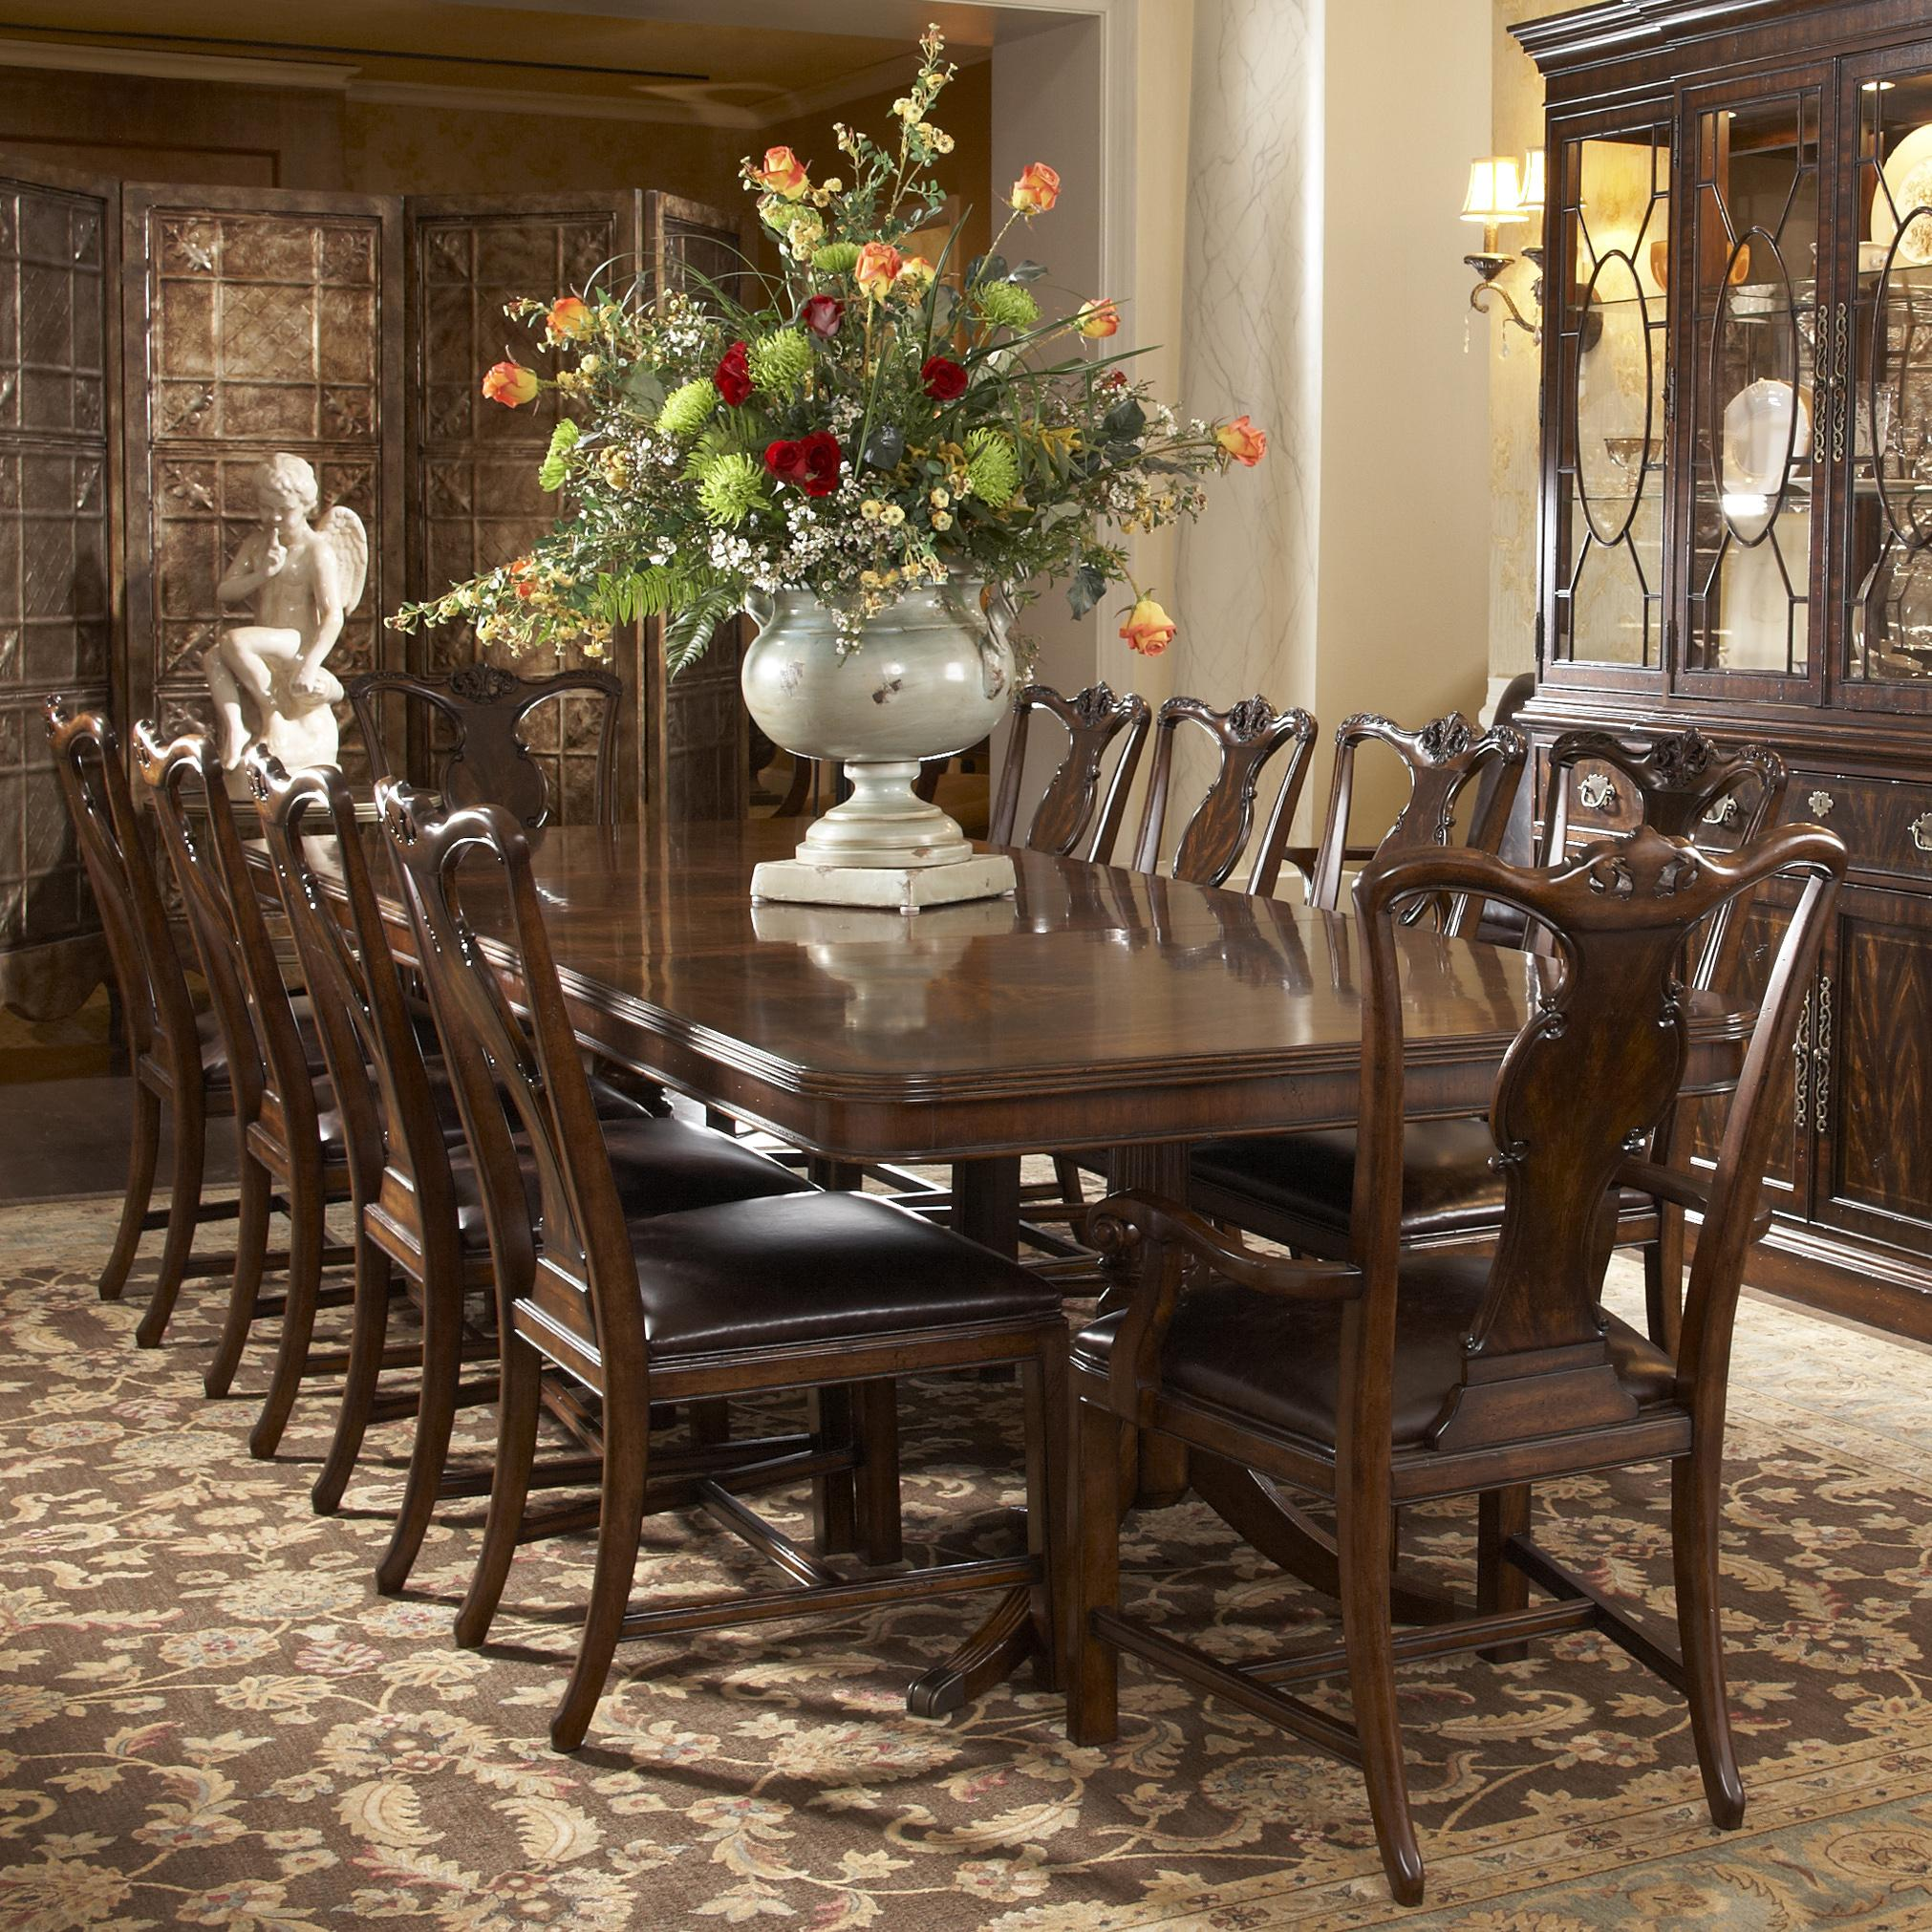 Double Pedestal Dining Room Table: Traditional Rectangular Double Pedestal Dining Table By